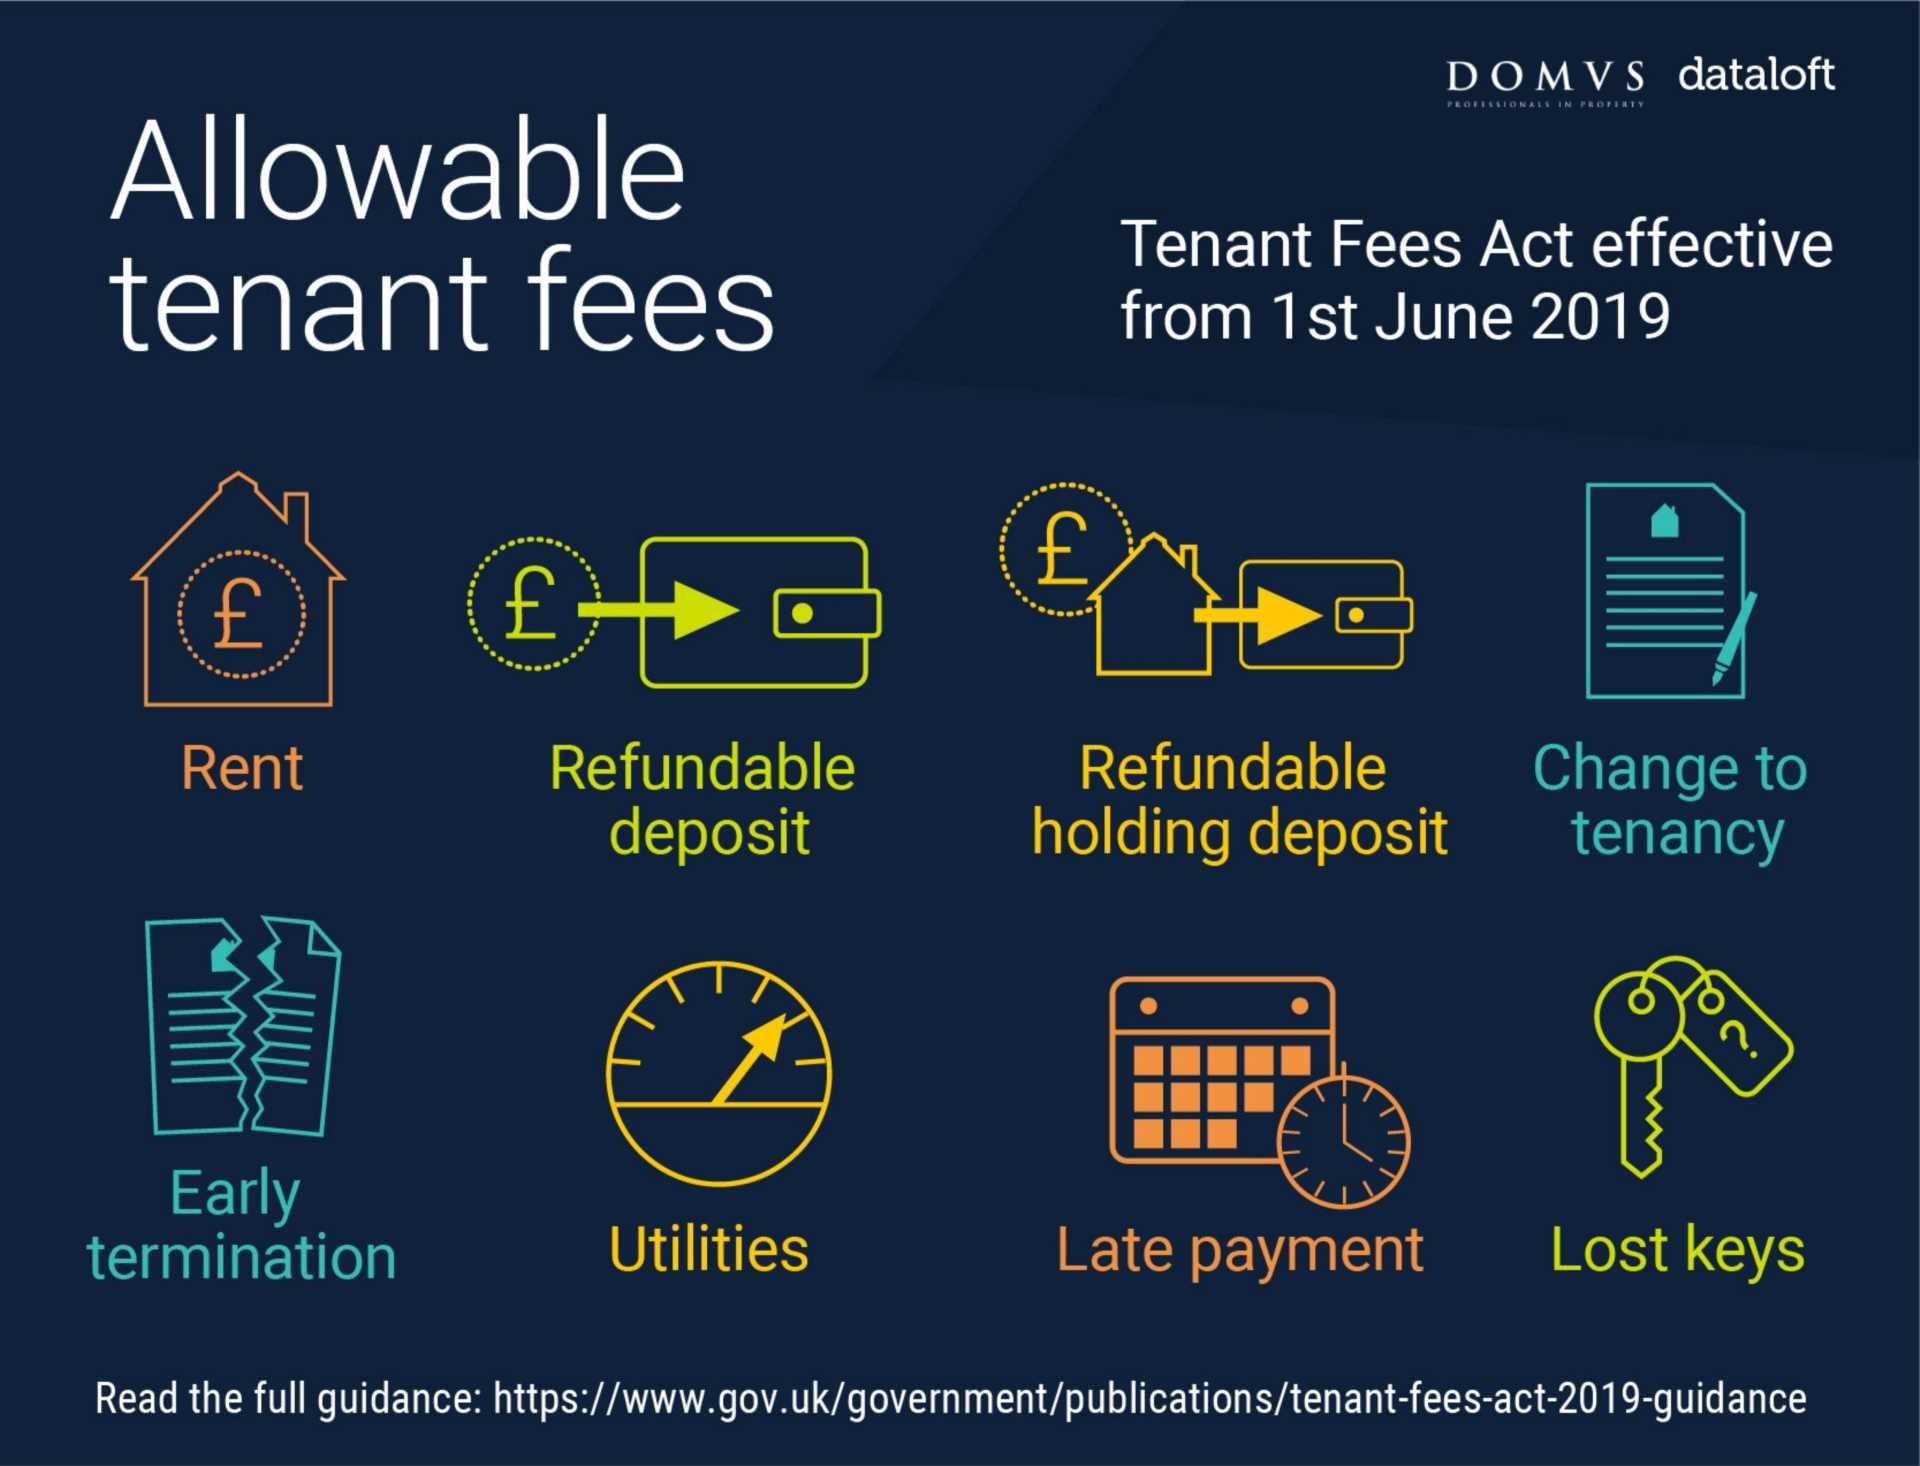 The Tenant Fees Act 2019